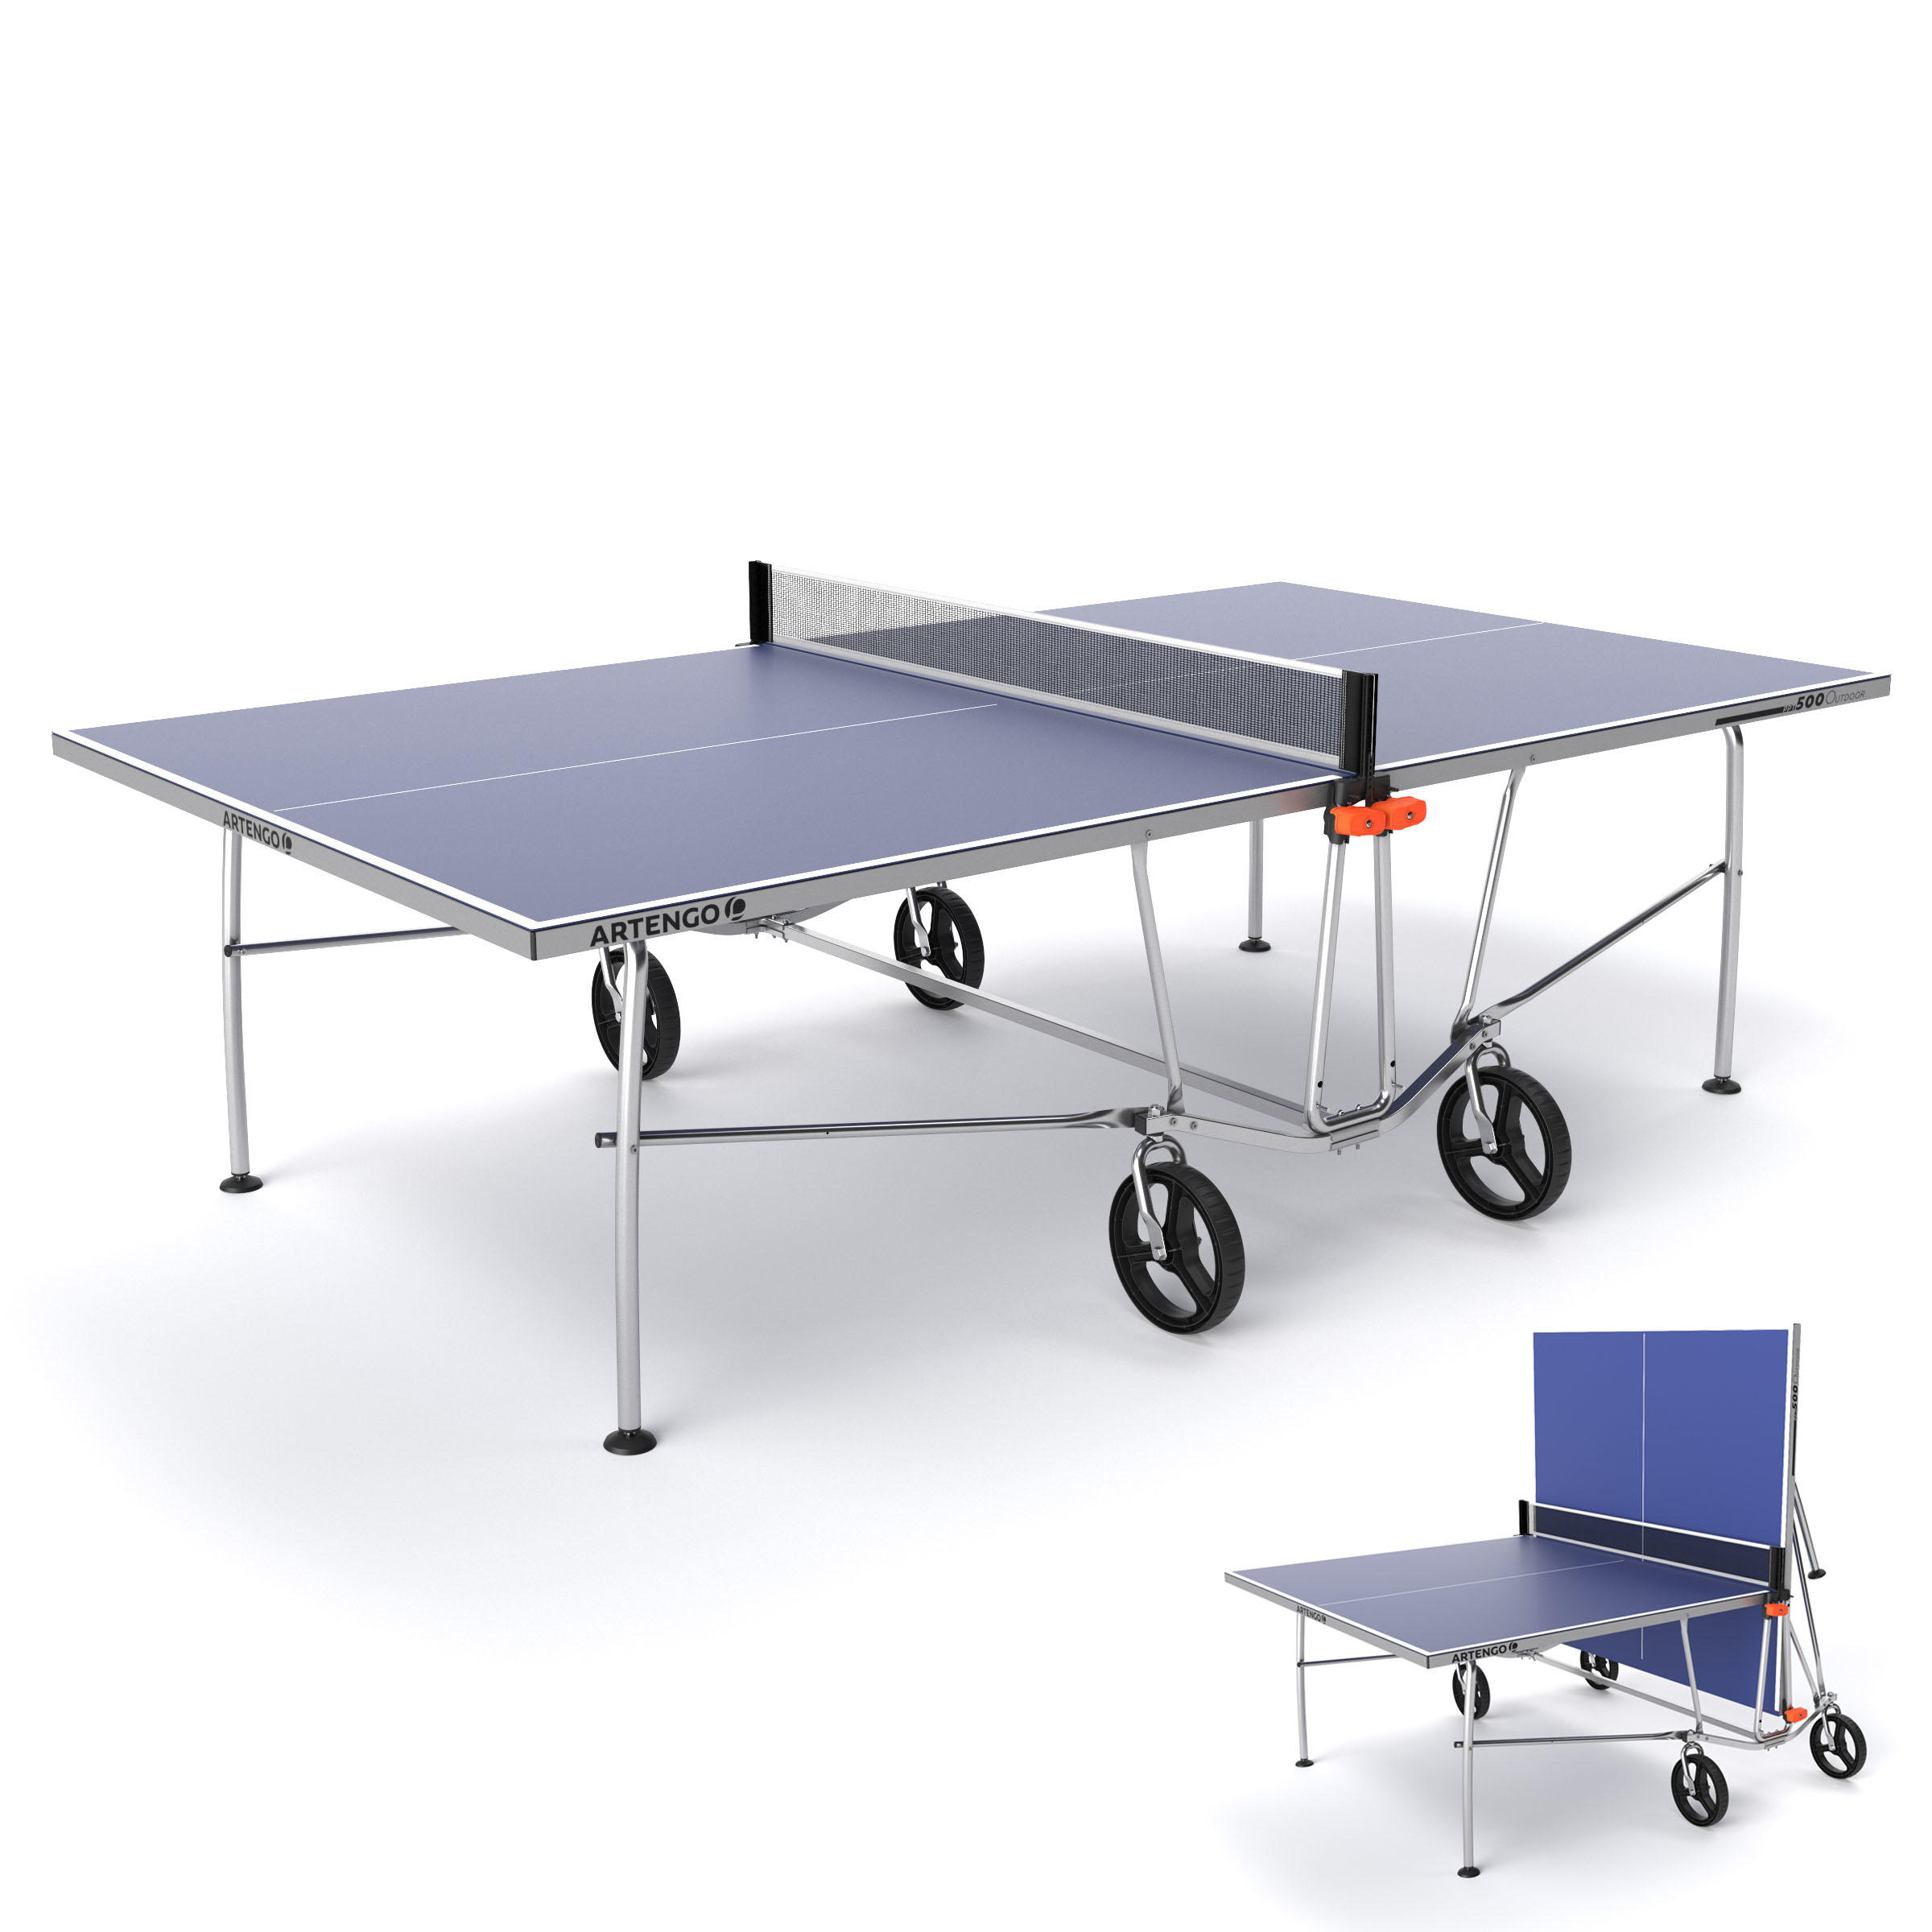 PPT 500 Outdoor Free Table Tennis Table